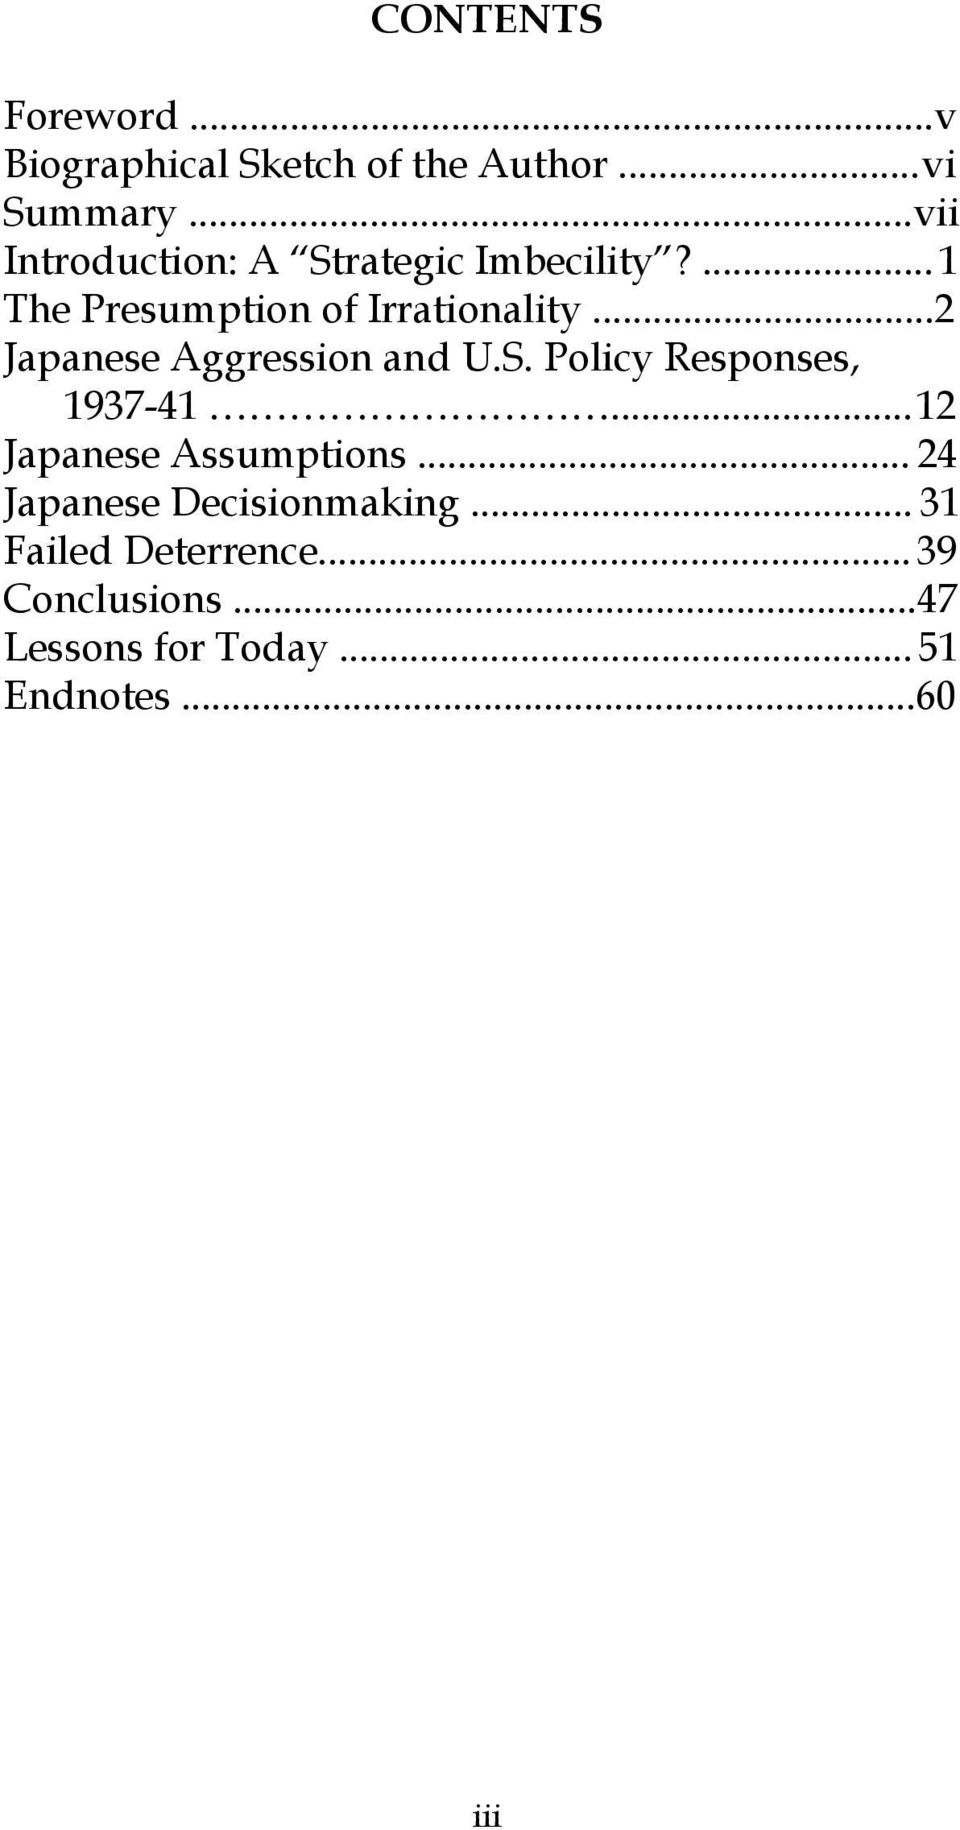 ..2 Japanese Aggression and U.S. Policy Responses, 1937-41... 12 Japanese Assumptions.